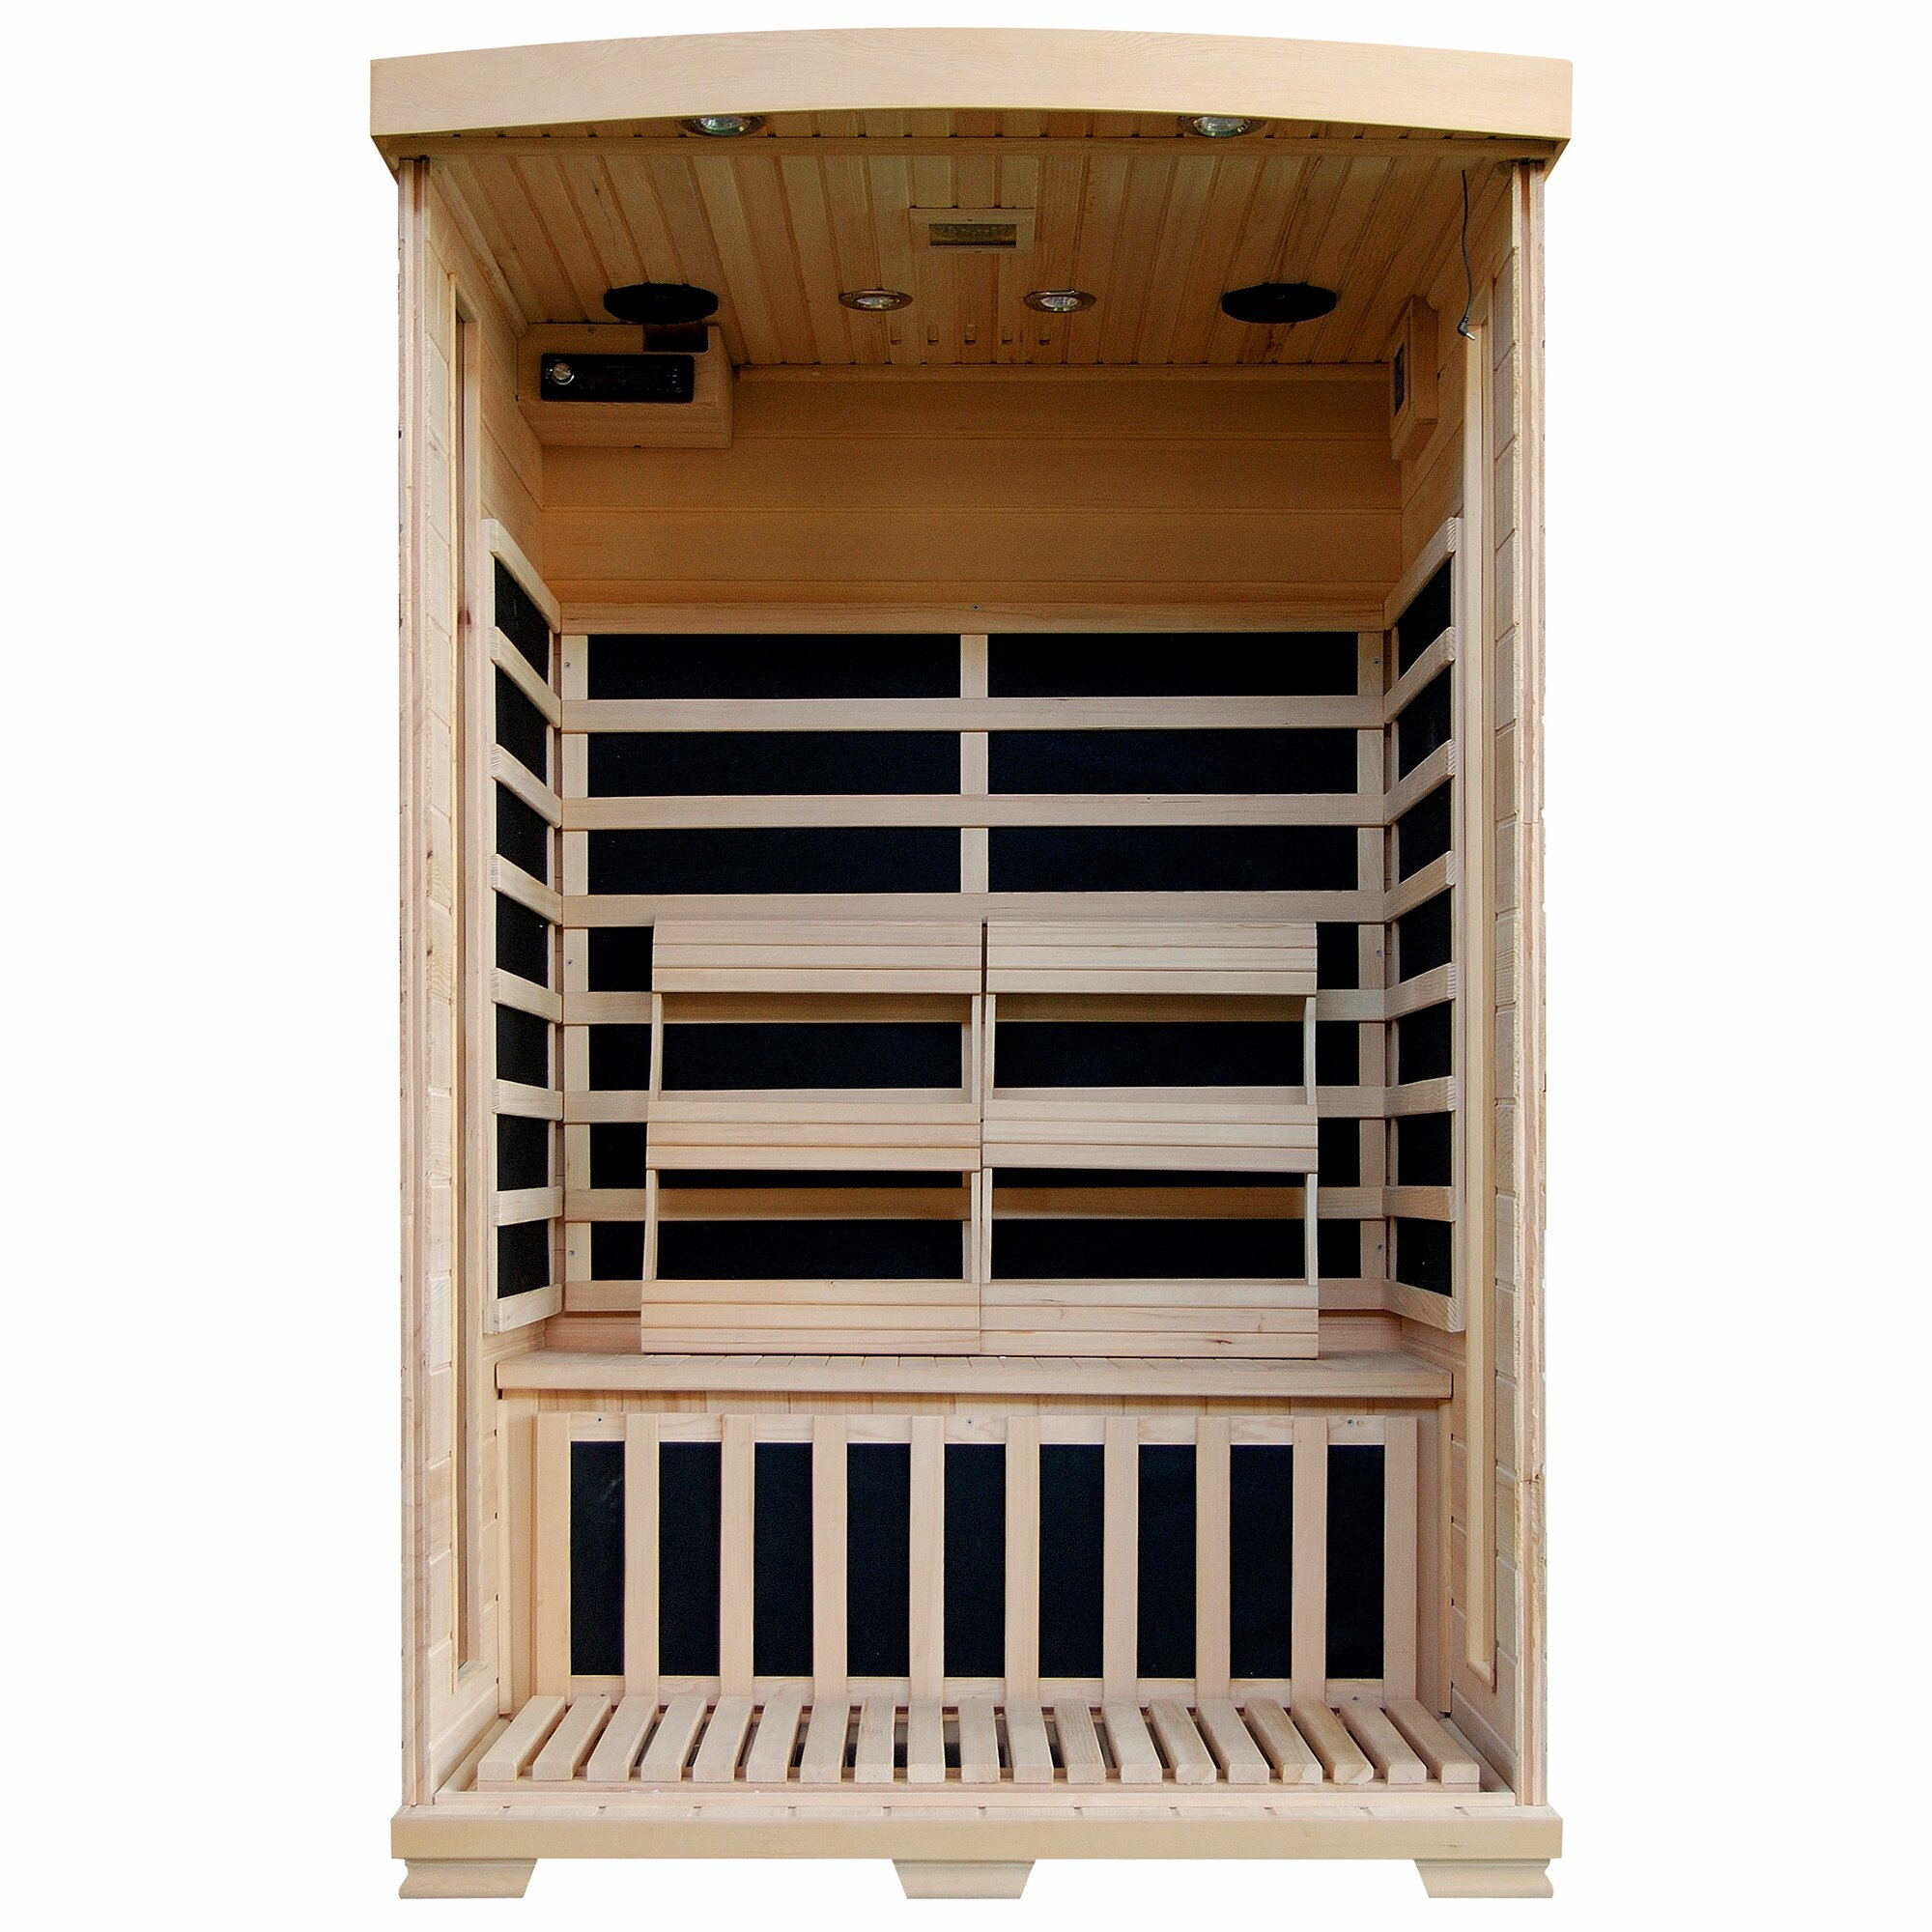 radiant saunas 2 person hemlock deluxe infrared sauna with 6 carbon heaters reviews wayfair. Black Bedroom Furniture Sets. Home Design Ideas